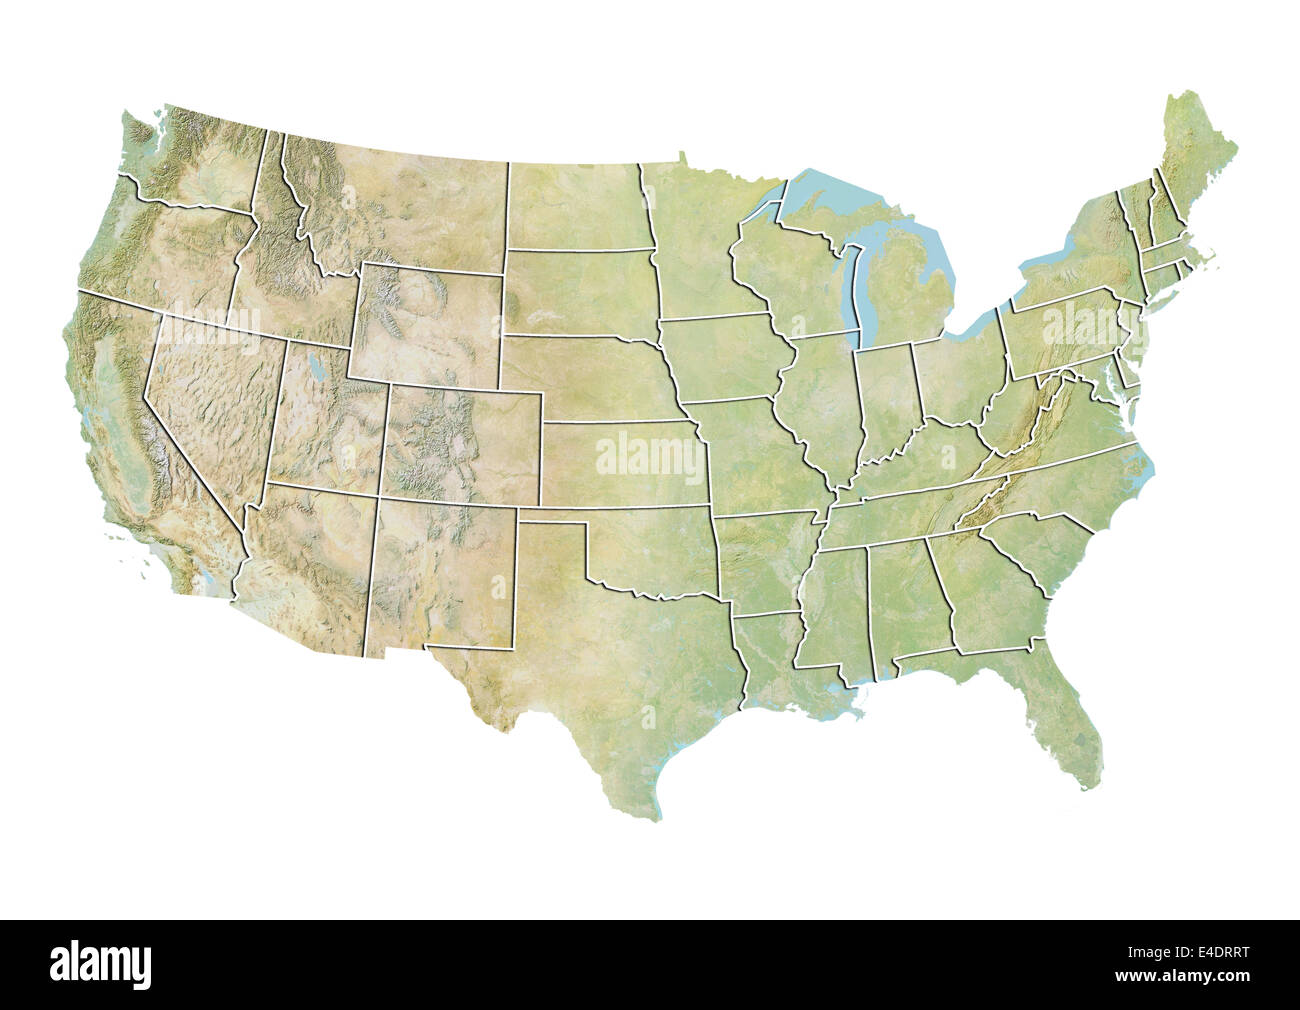 United States, Relief Map With State Boundaries Stock Photo ...